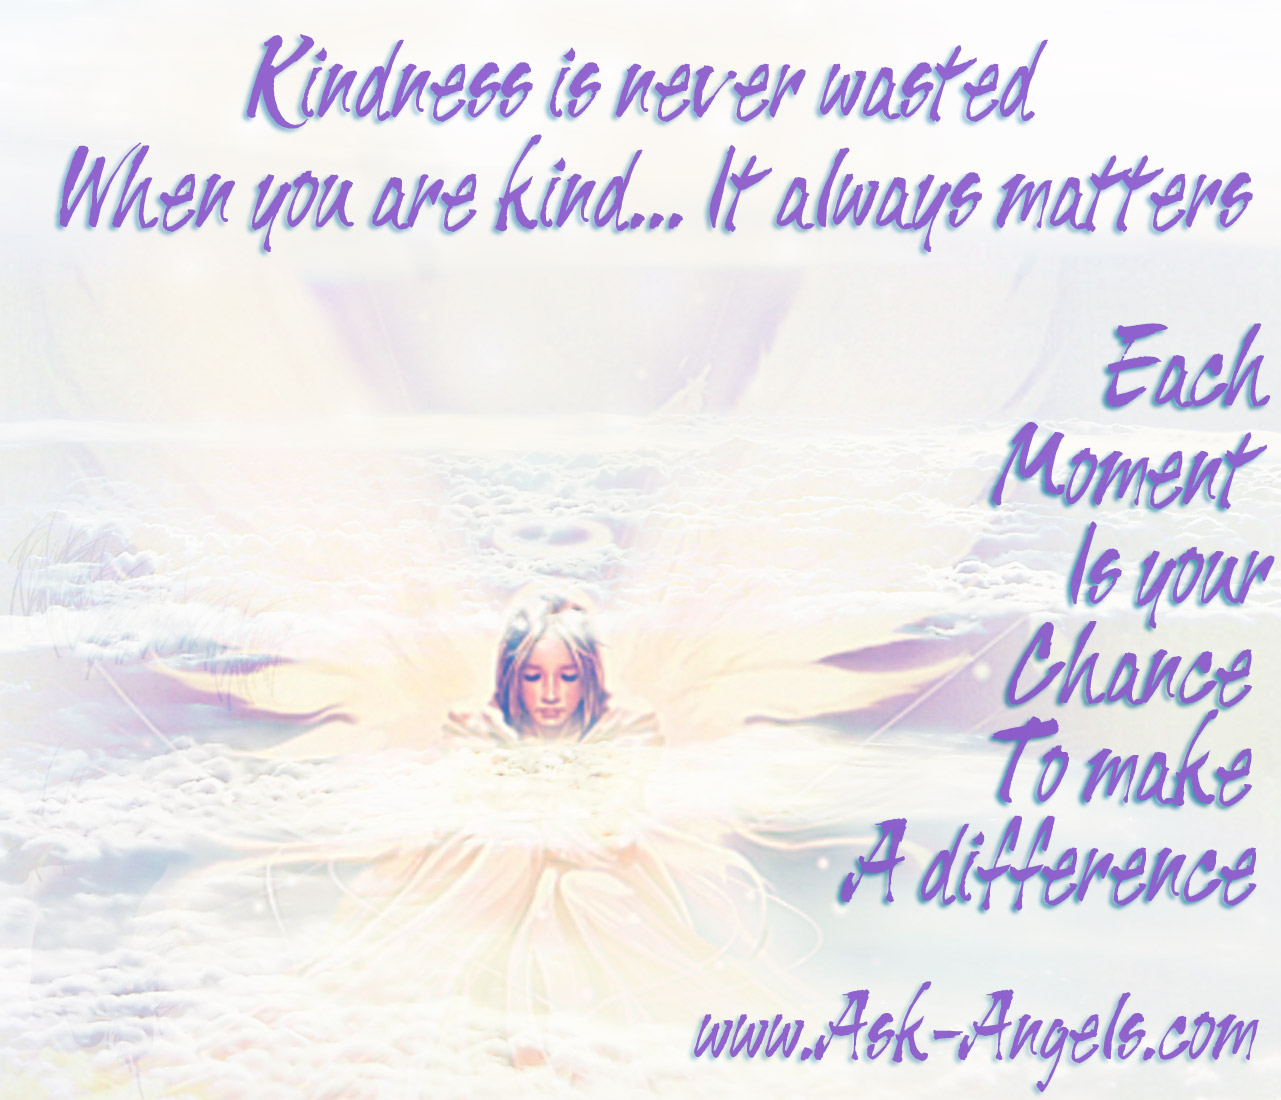 Kindness Is Never Wasted. When You Are Kind It Always Matters. Each Moment Is Your Chance To Make A Difference. ~ Angel Quotes